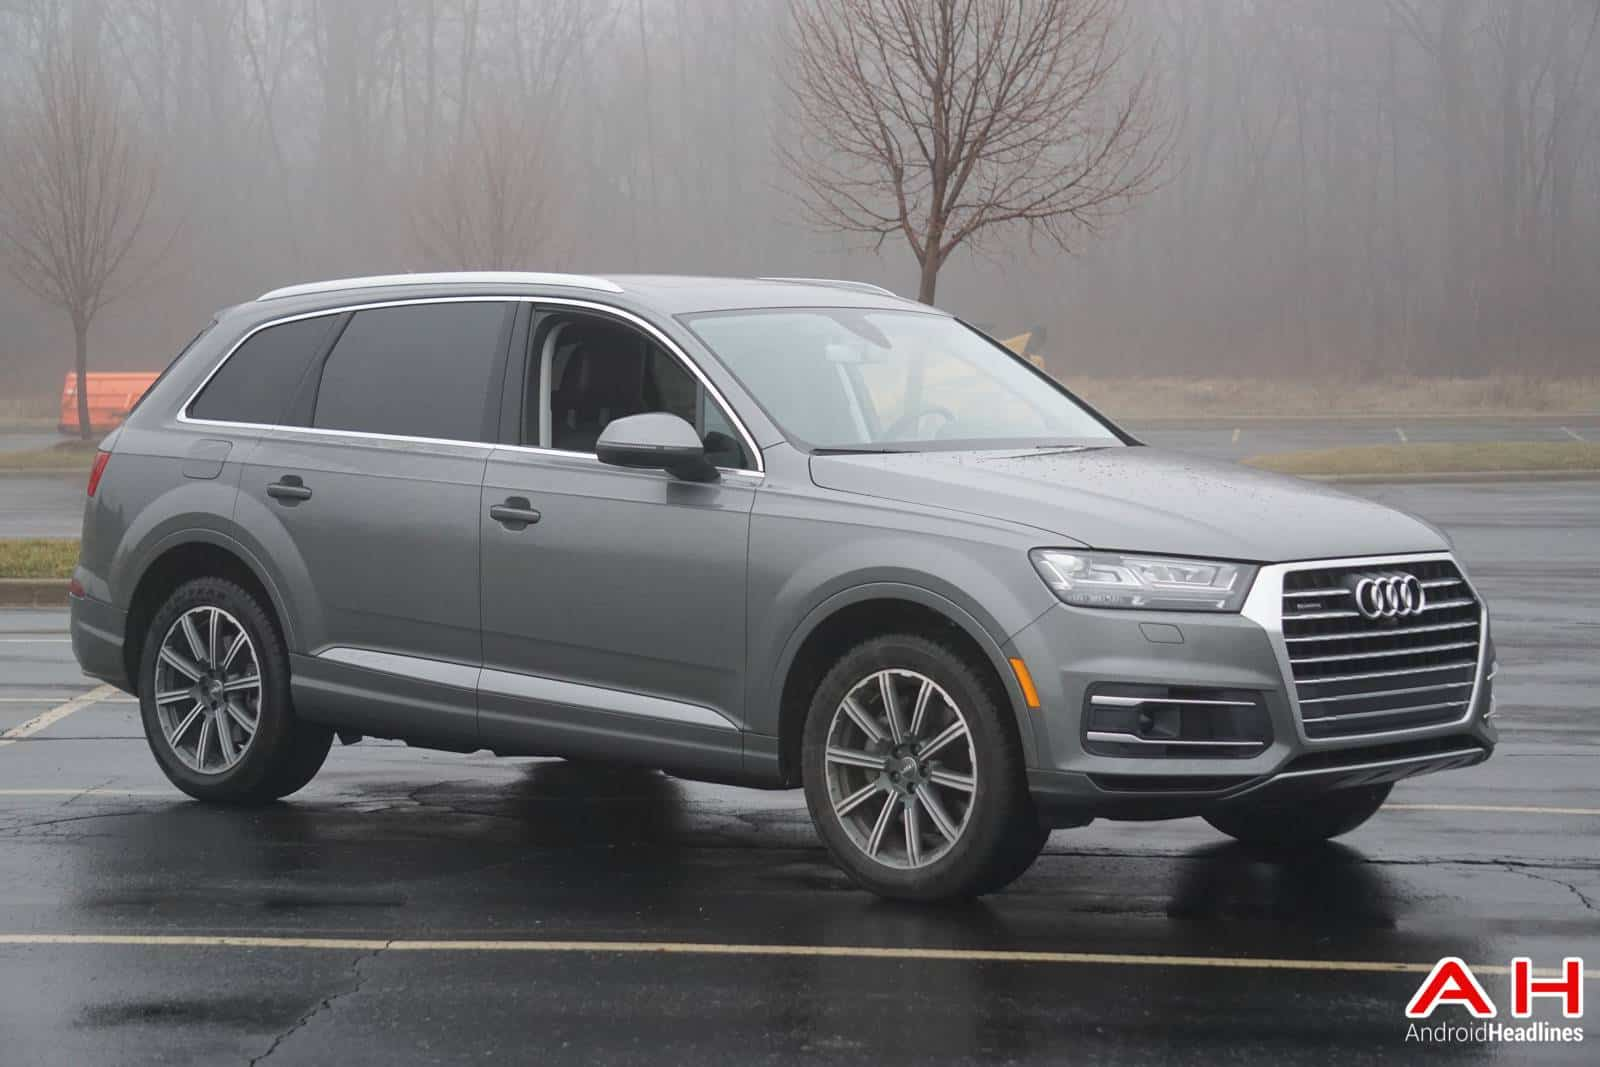 Audi-Q7-Review-AH-00053